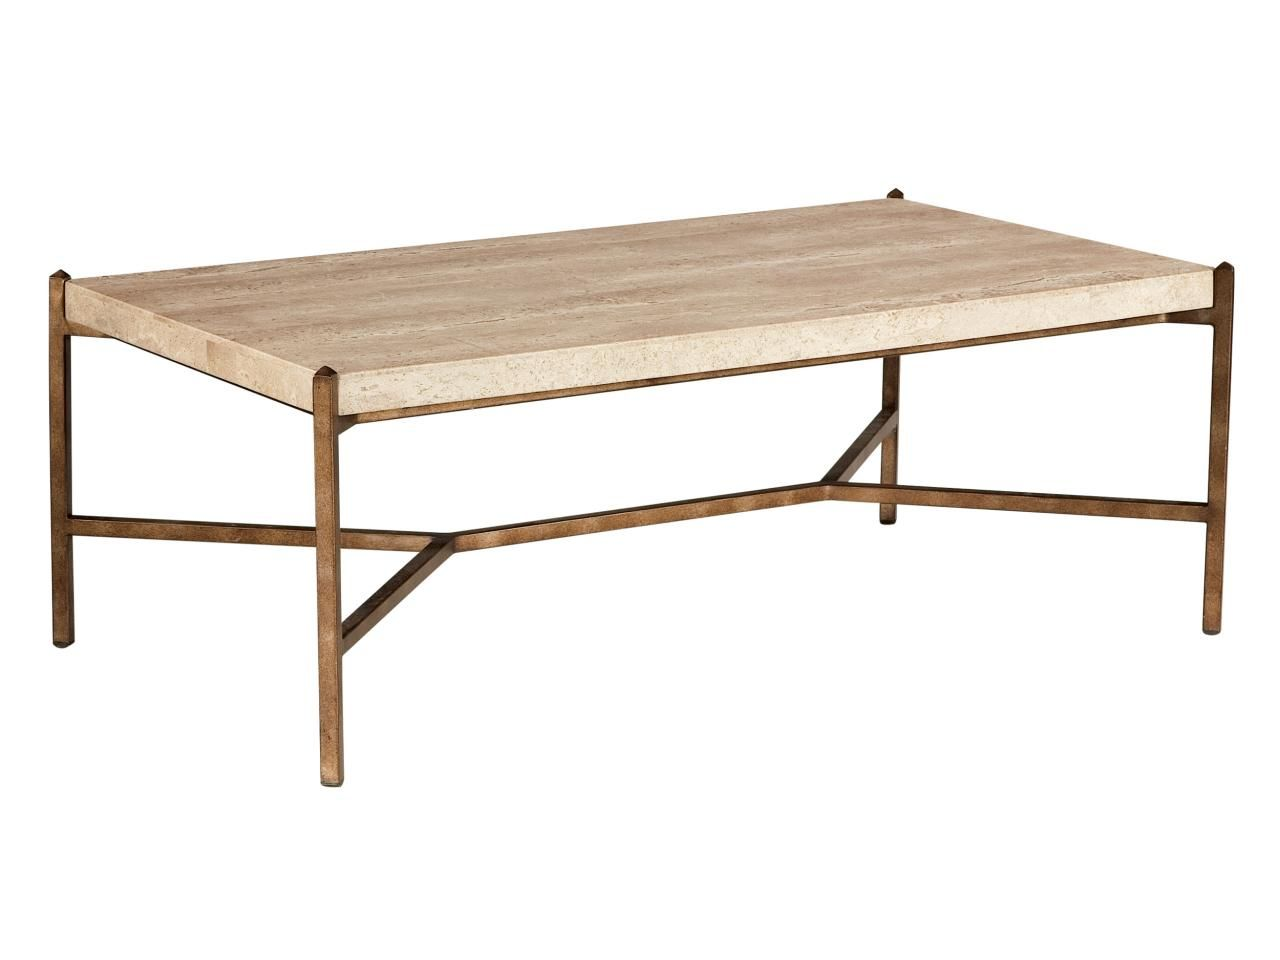 Ordinaire 10 Tips For Finding The Perfect Coffee Table : Decorating : Home Garden  Television